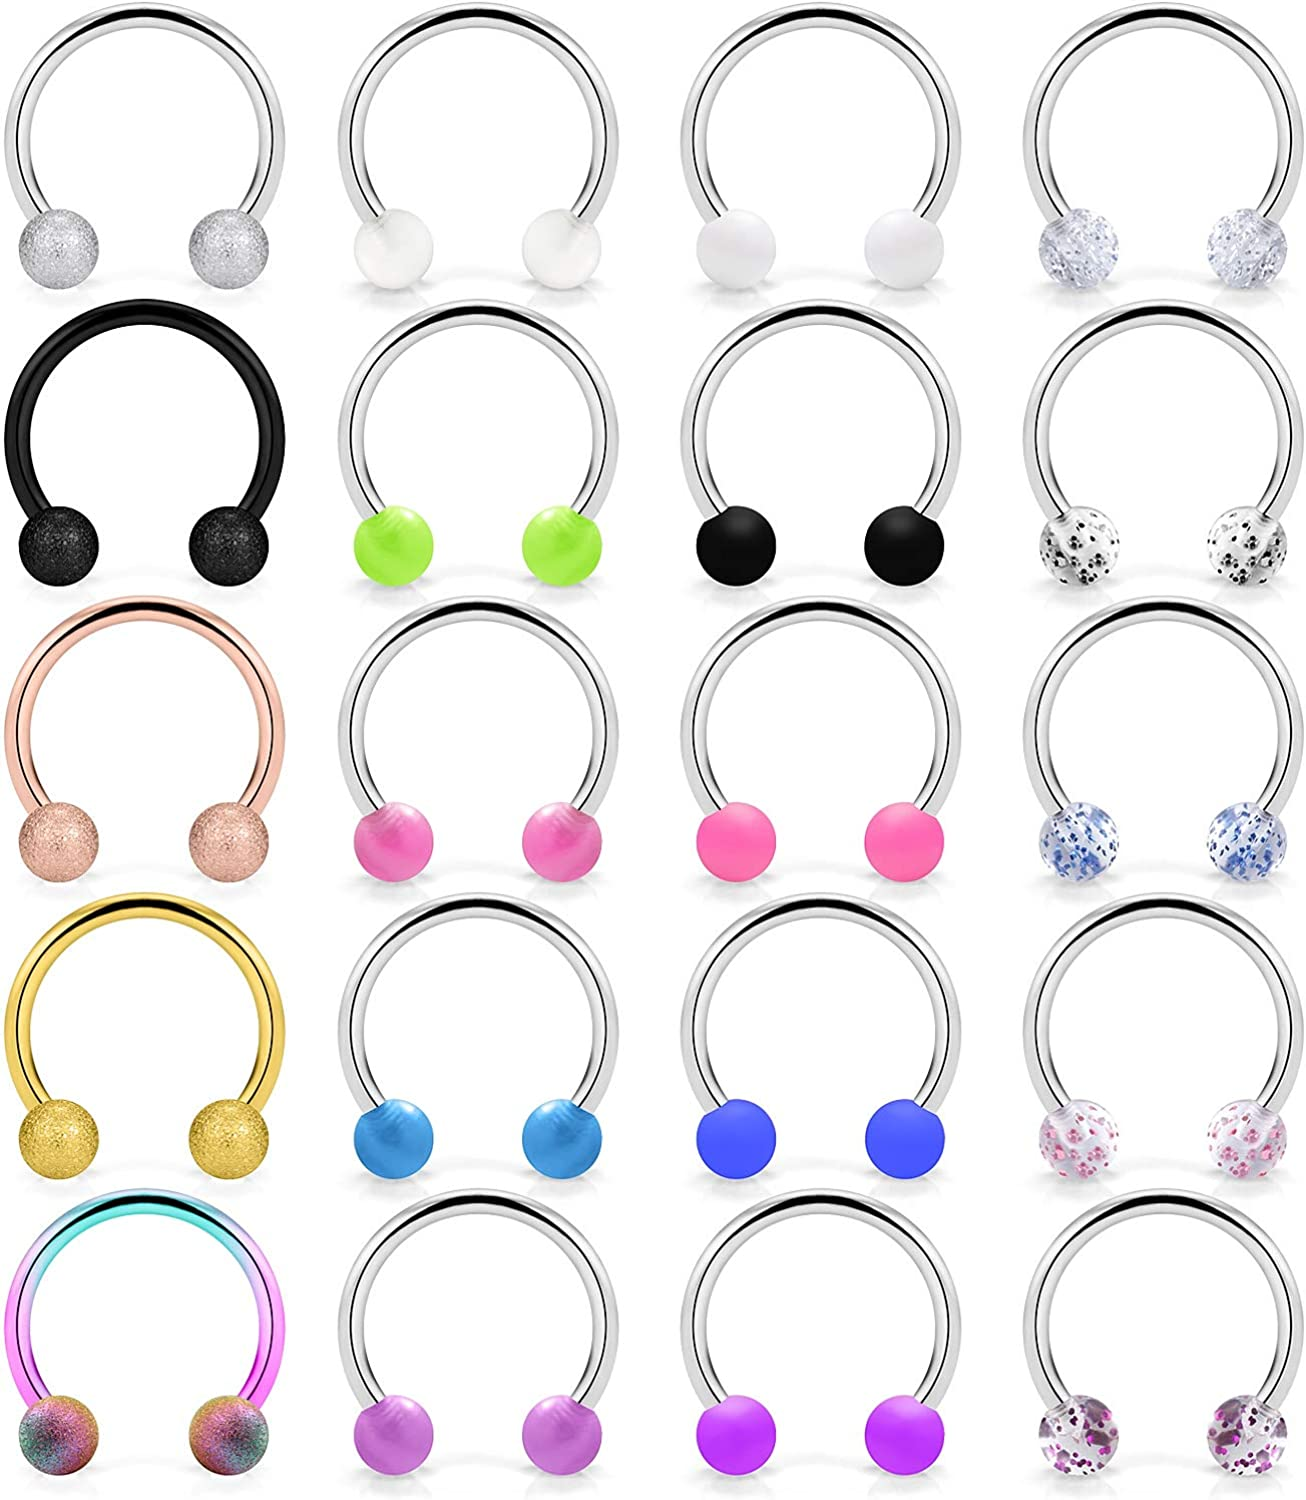 Ocptiy 20Pcs 16G Surgical Steel Septum Jewelry Cartilage Helix Tragus Earring Nose Lip Hoop Rings Piercing Jewelry Horseshoe Retainer for Women Men 10mm